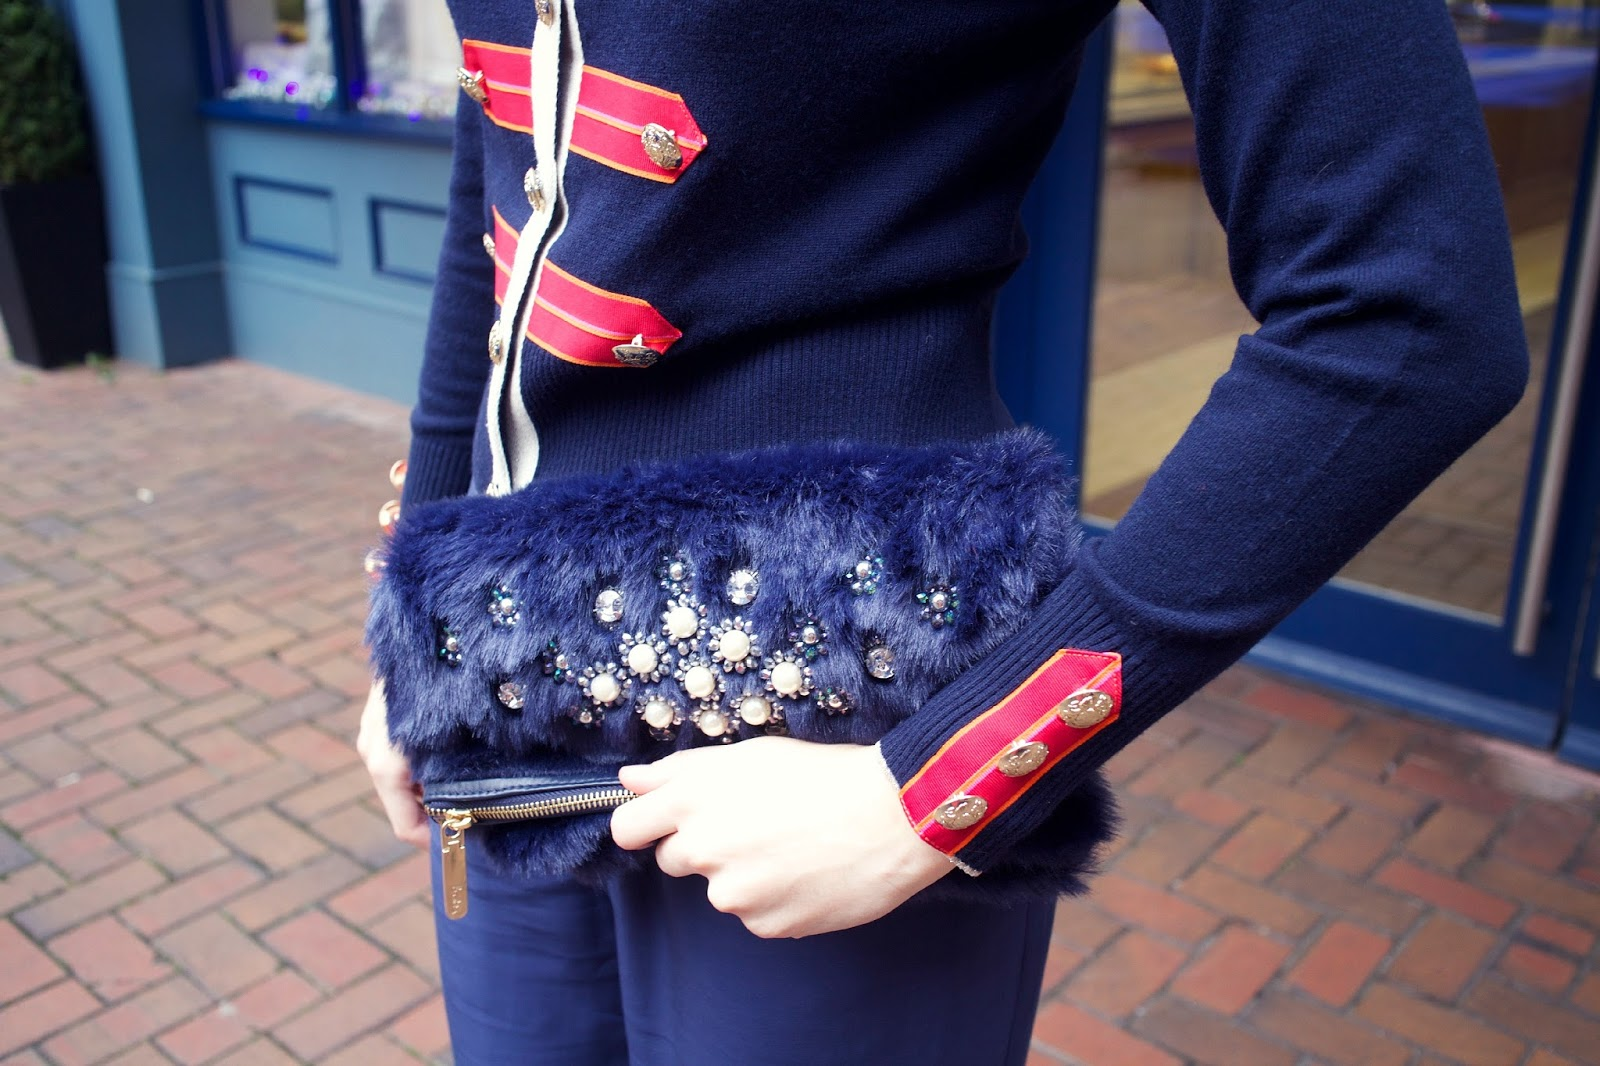 boden icons royal couple cardigan and embellished clutch